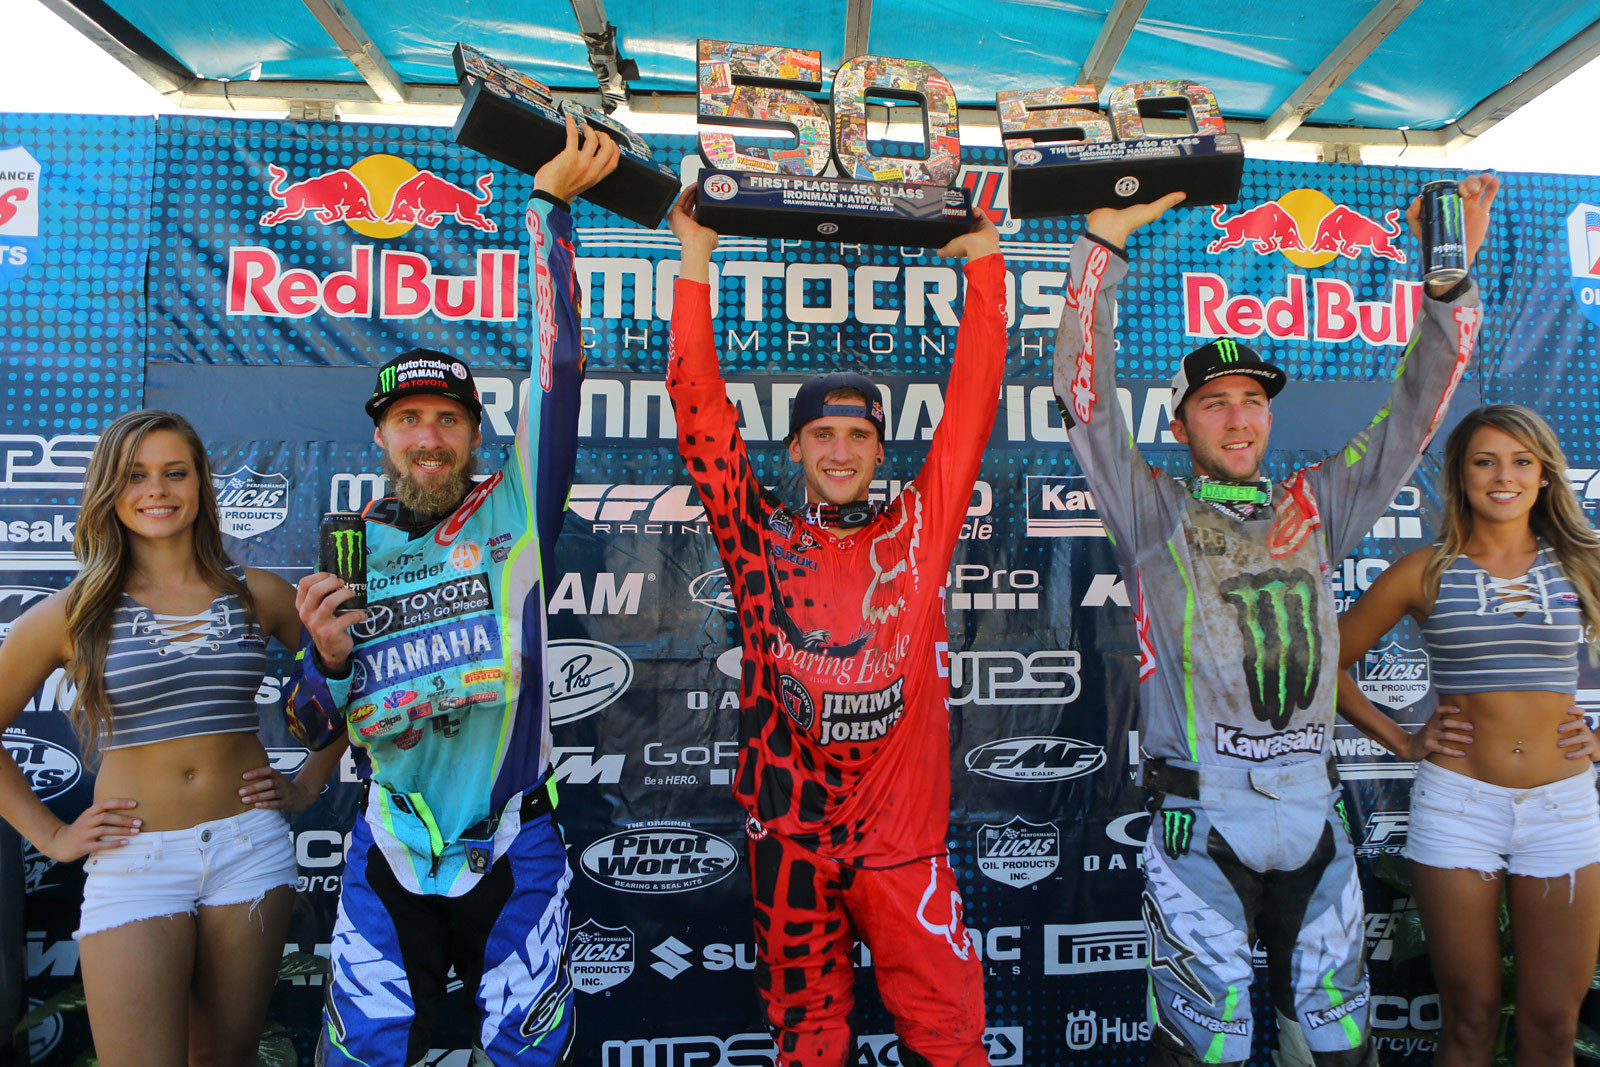 Ken Roczen (1st), Justin Barcia (2nd), and Eli Tomac (3rd) - Photo Blast: Ironman - Motocross Pictures - Vital MX